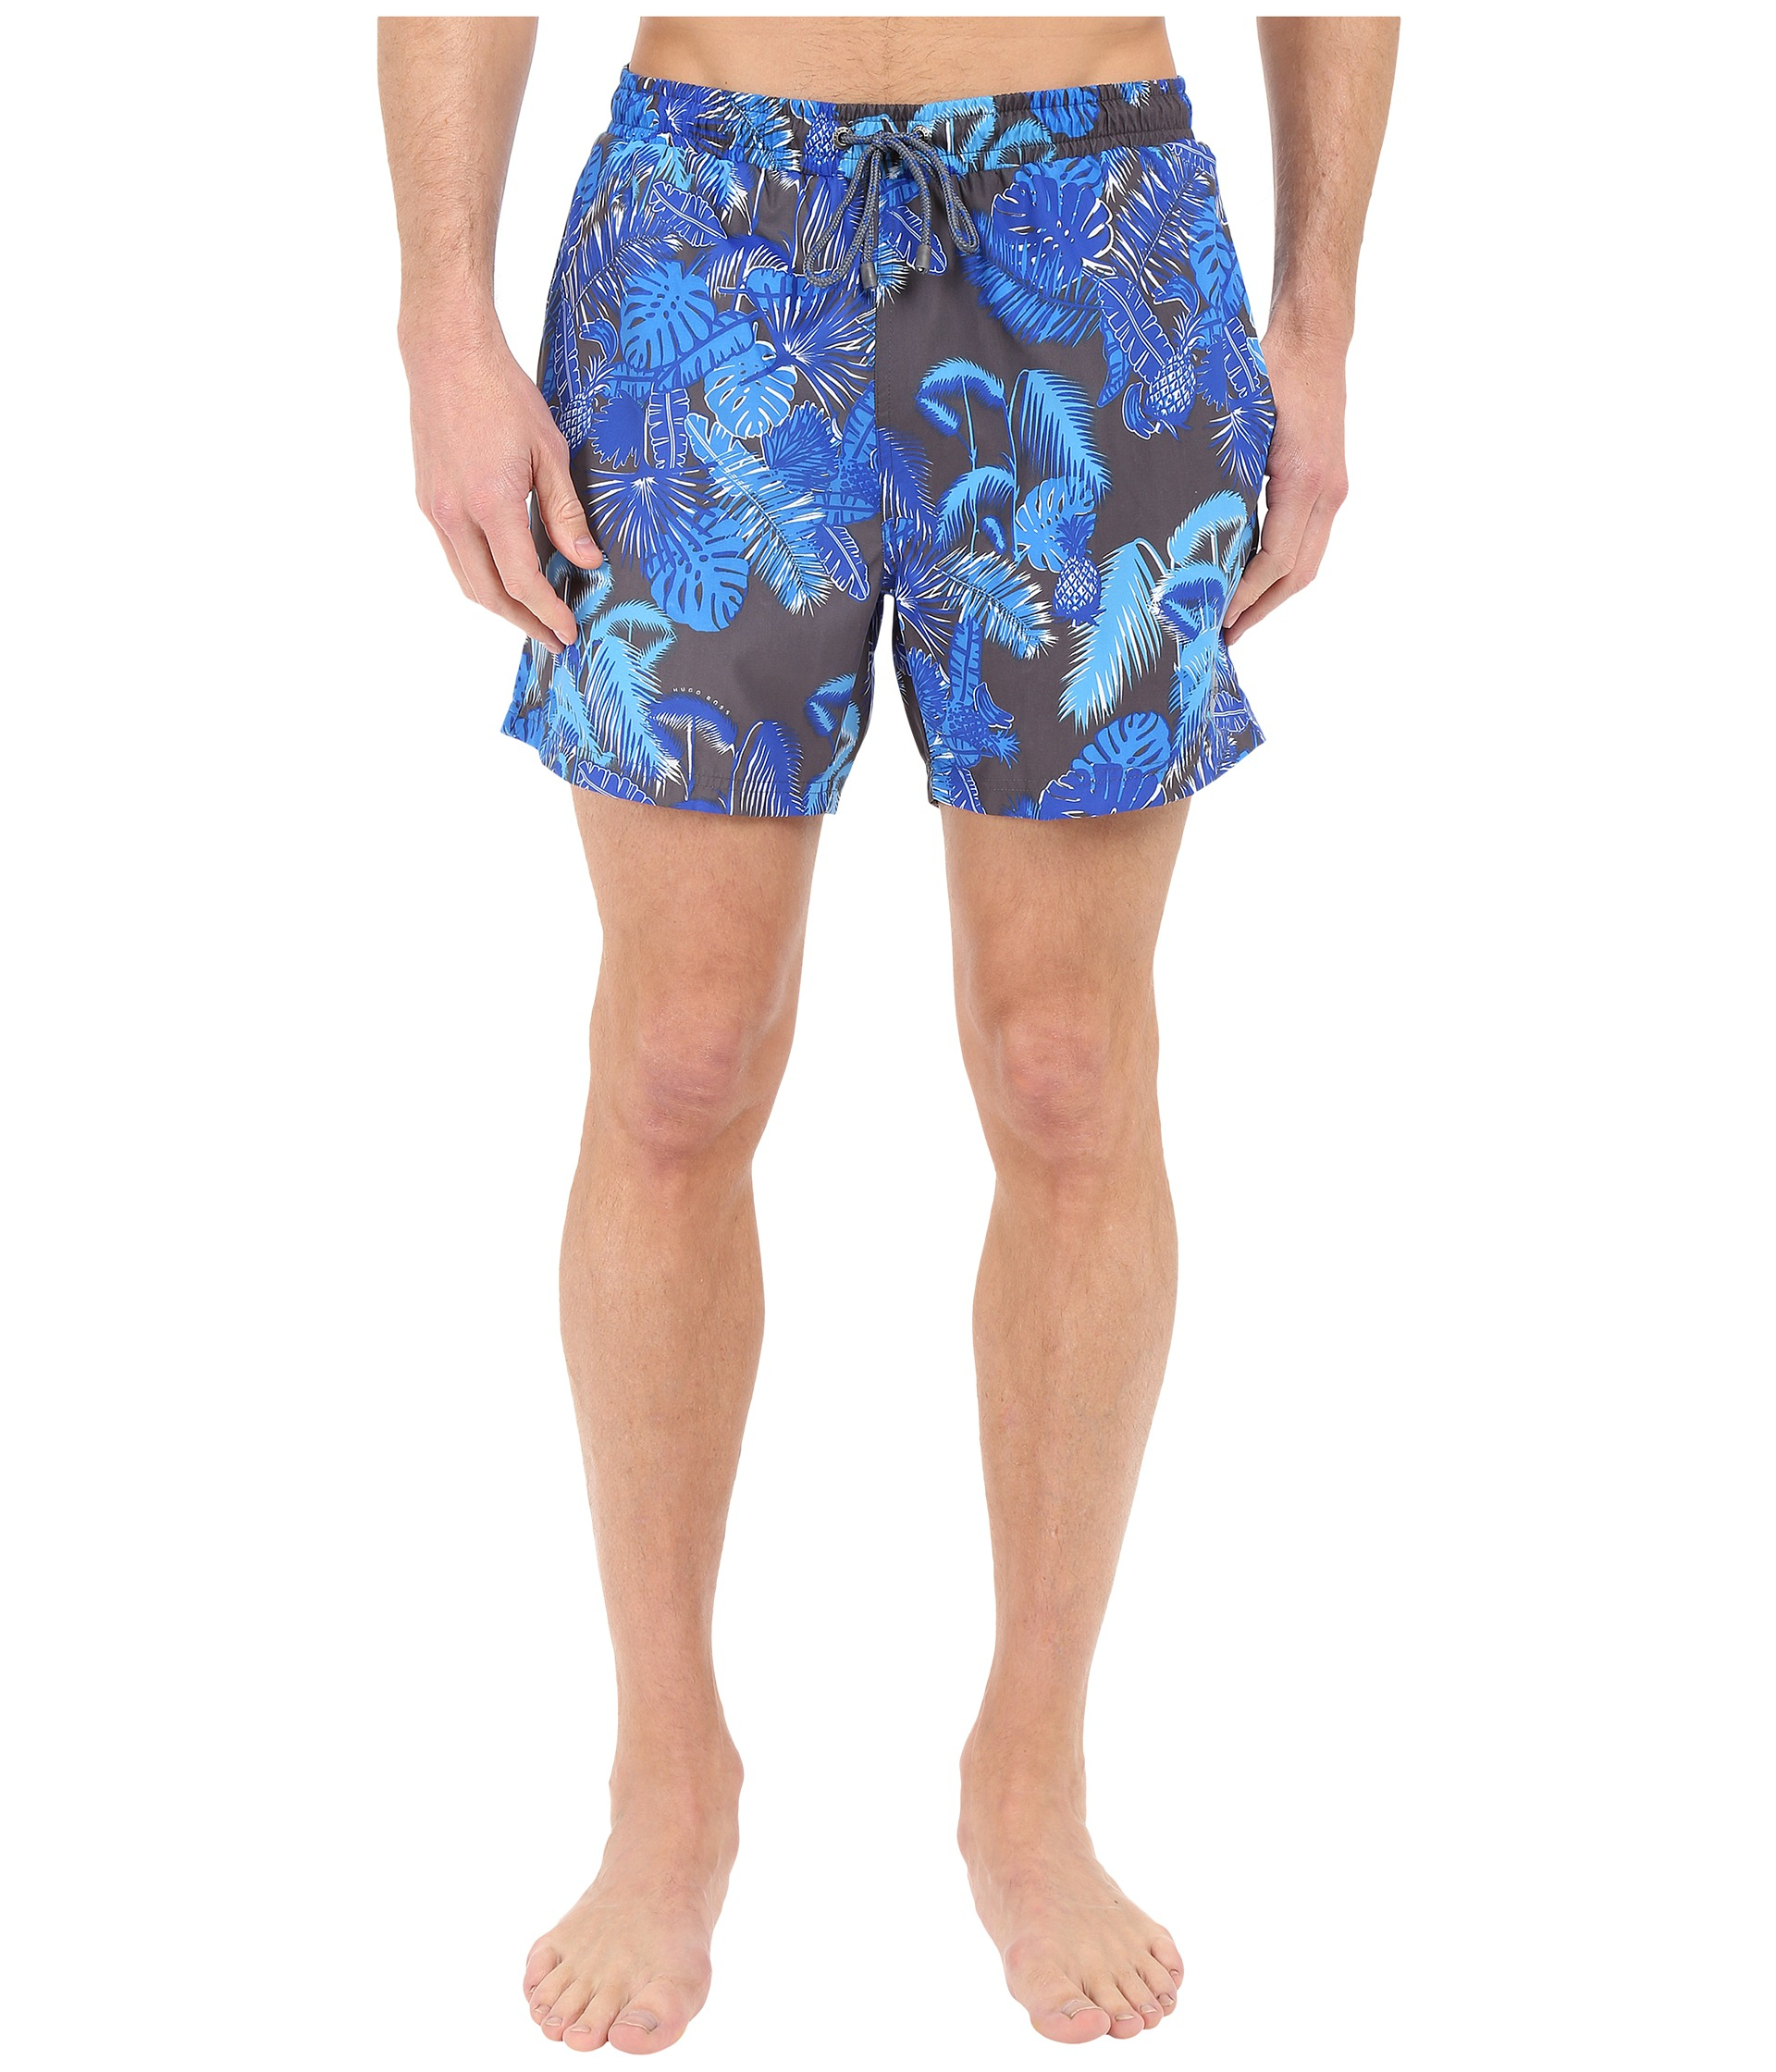 d478ee2def hugo boss piranha floral print swim short | Teduh Hostel